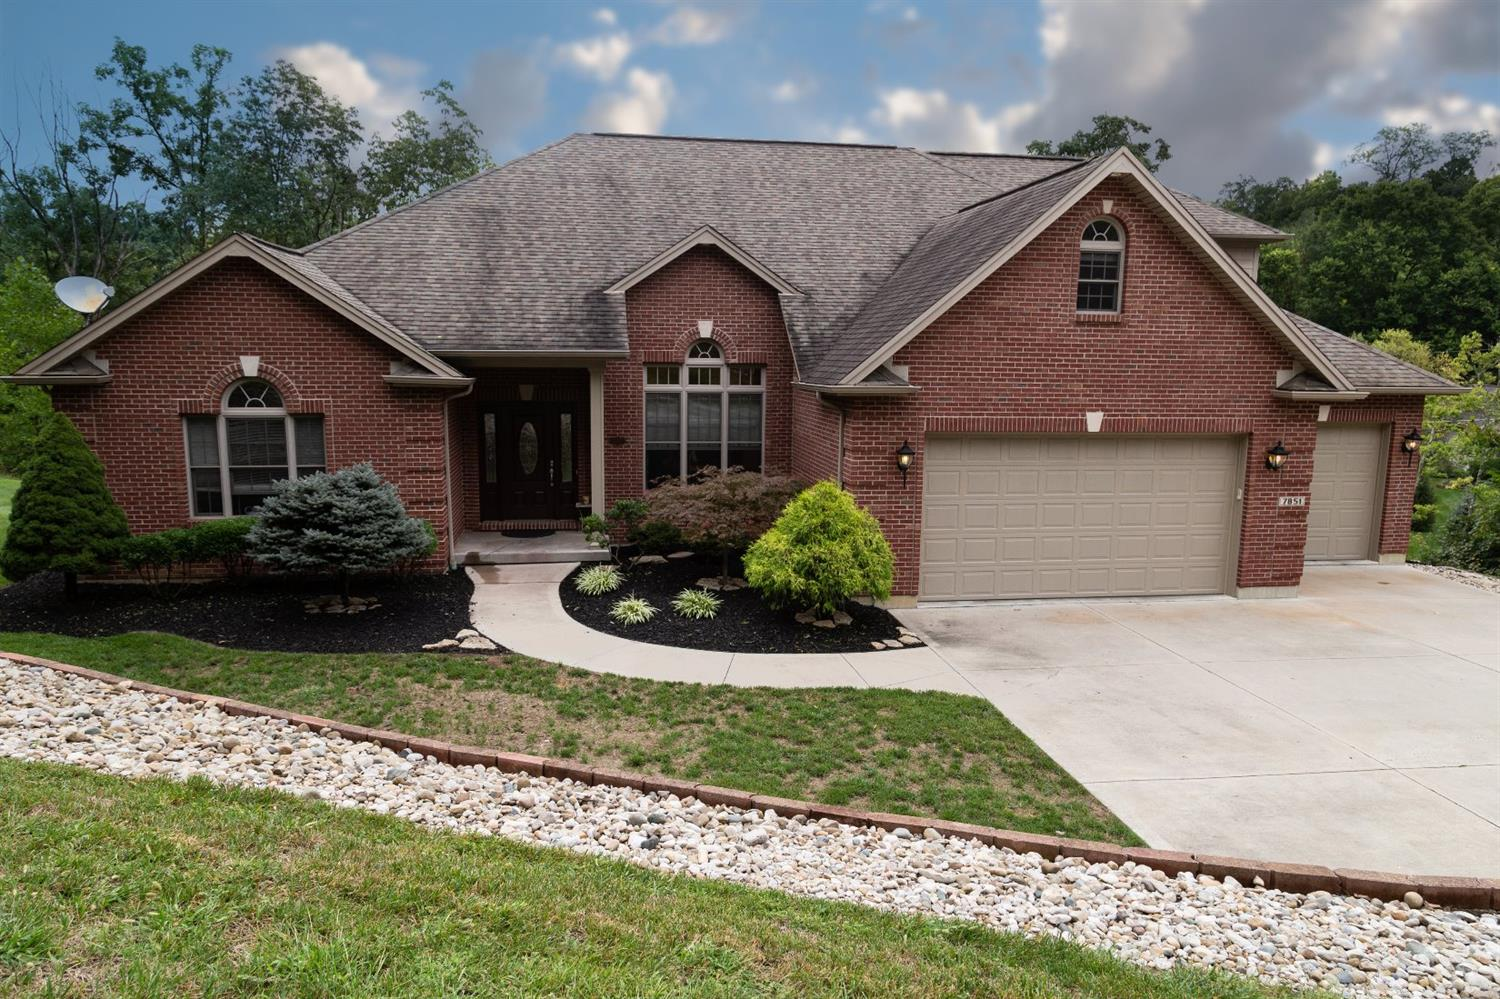 7851 Sheed Rd Colerain Twp.West, OH